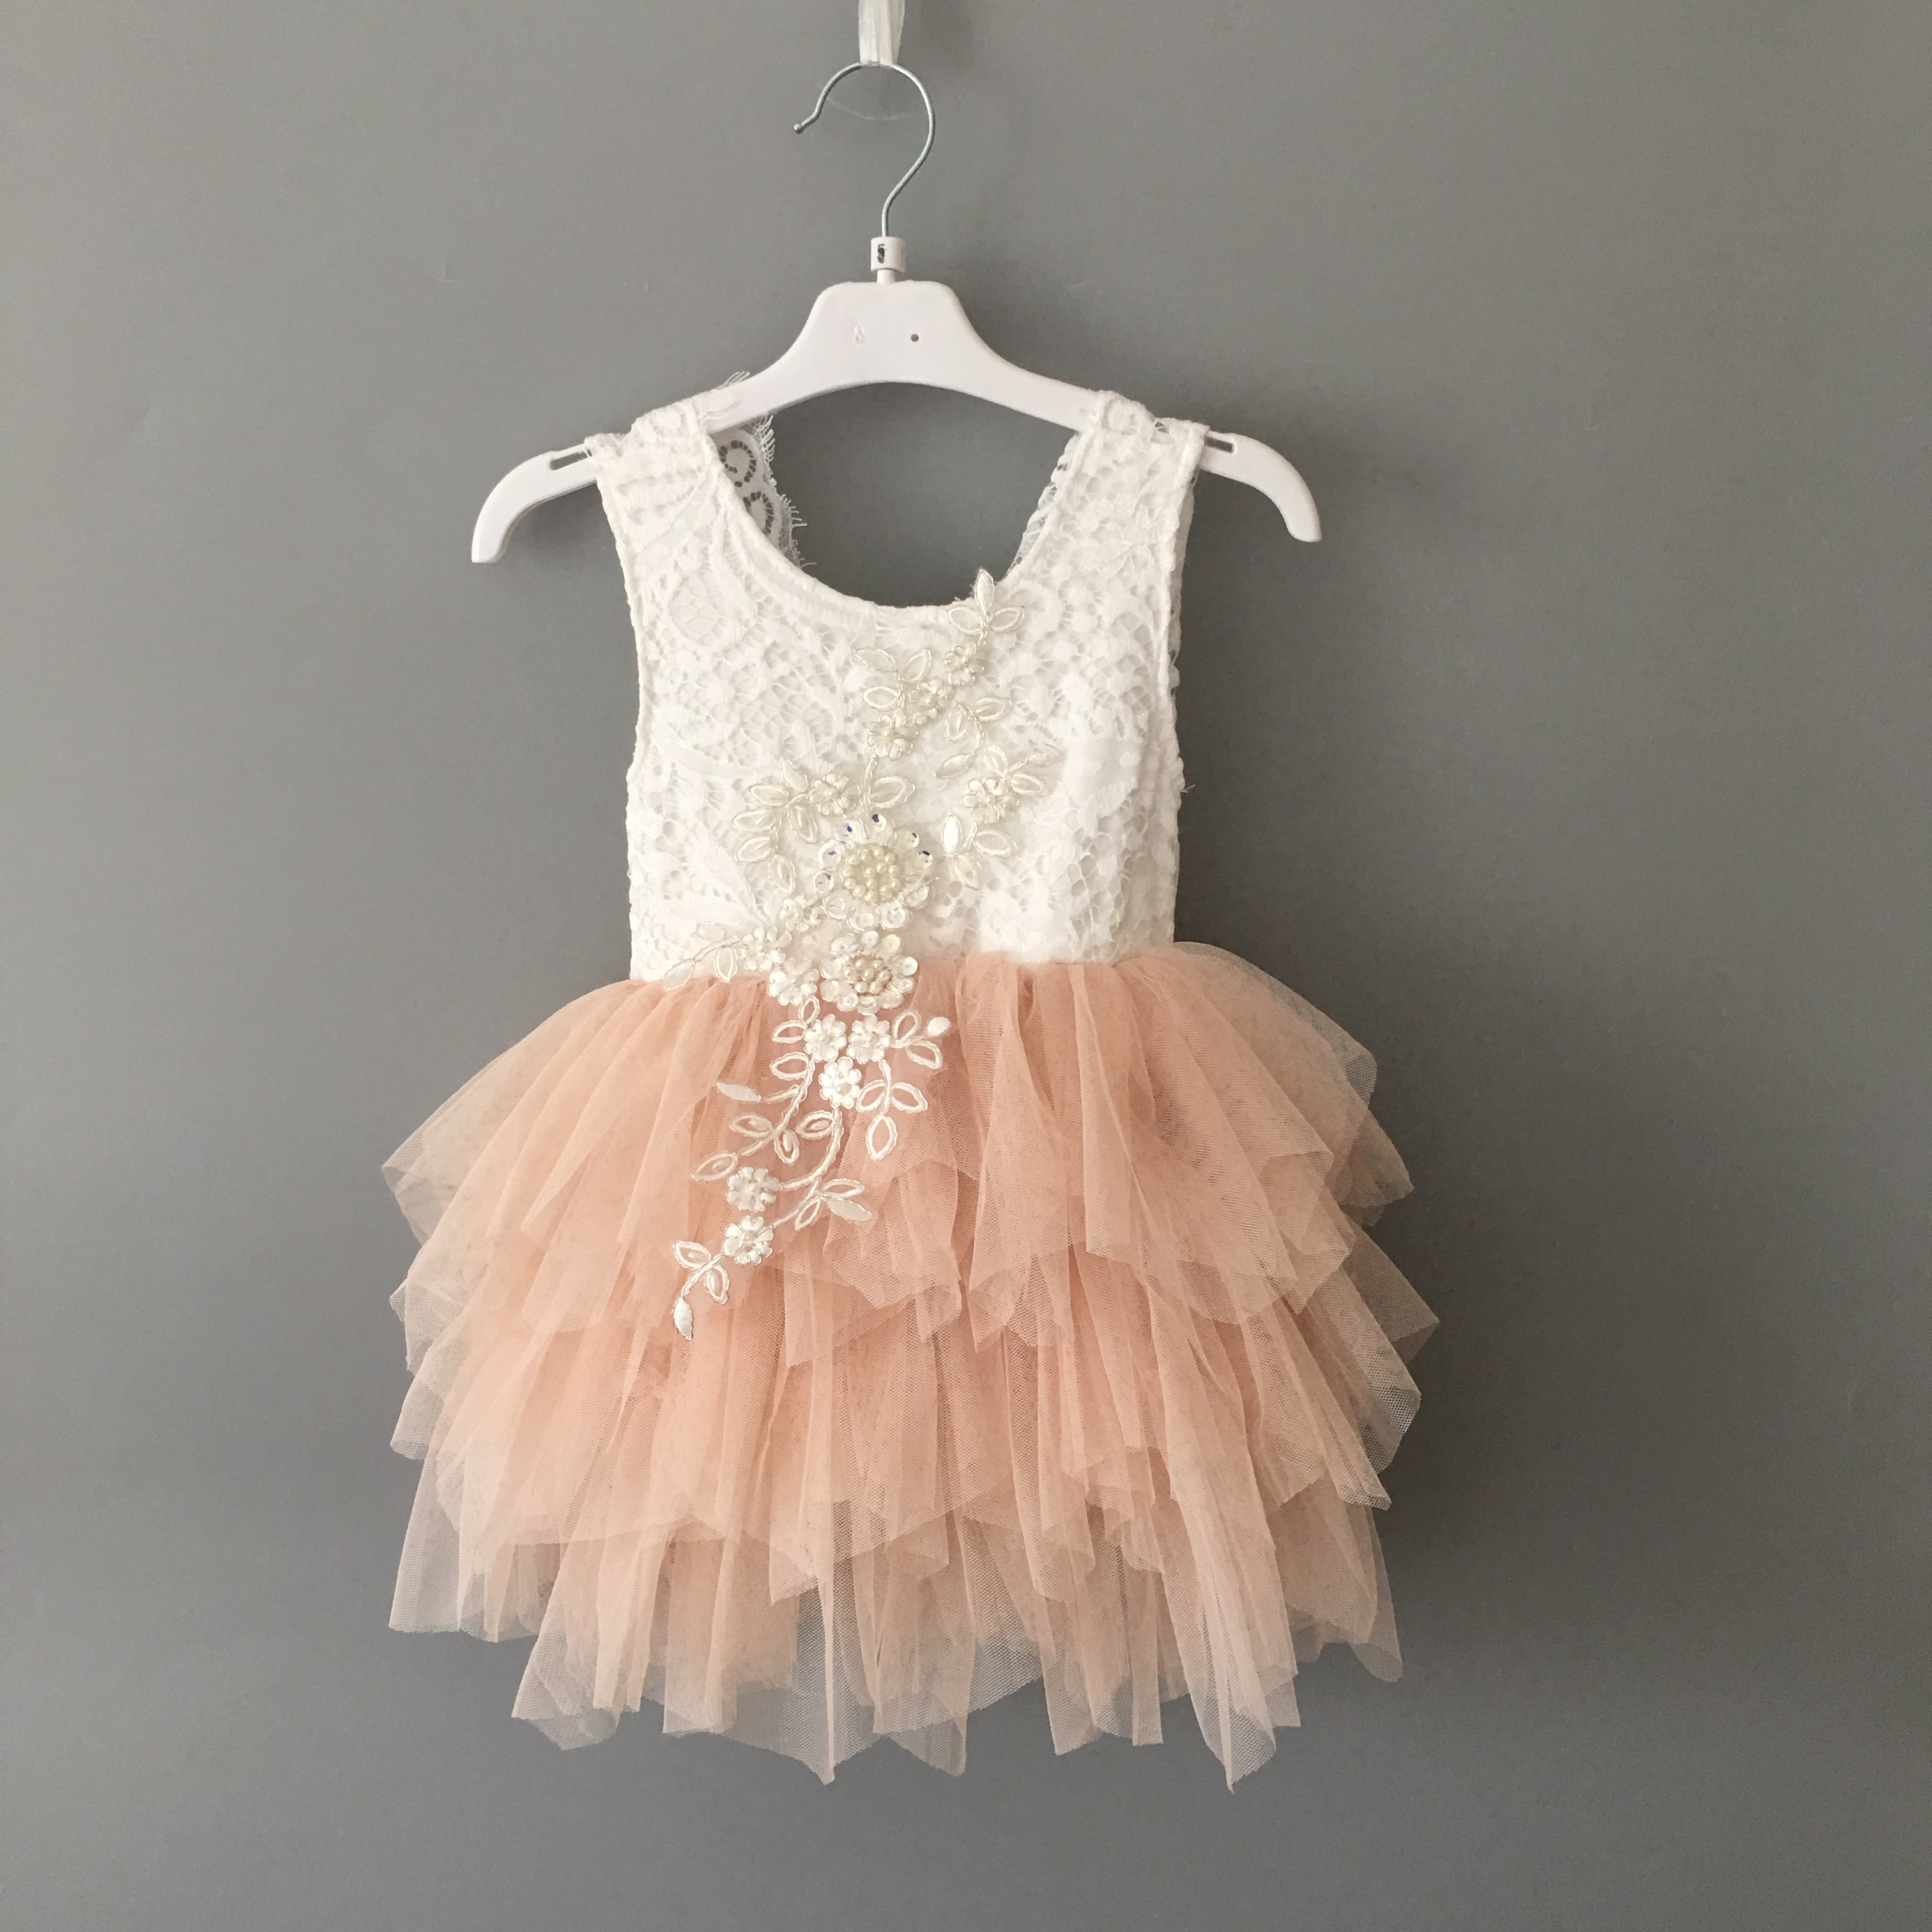 New Champagne color summer girls tutu dress for kids beautiful girls embroidery lace dresses toddler girls